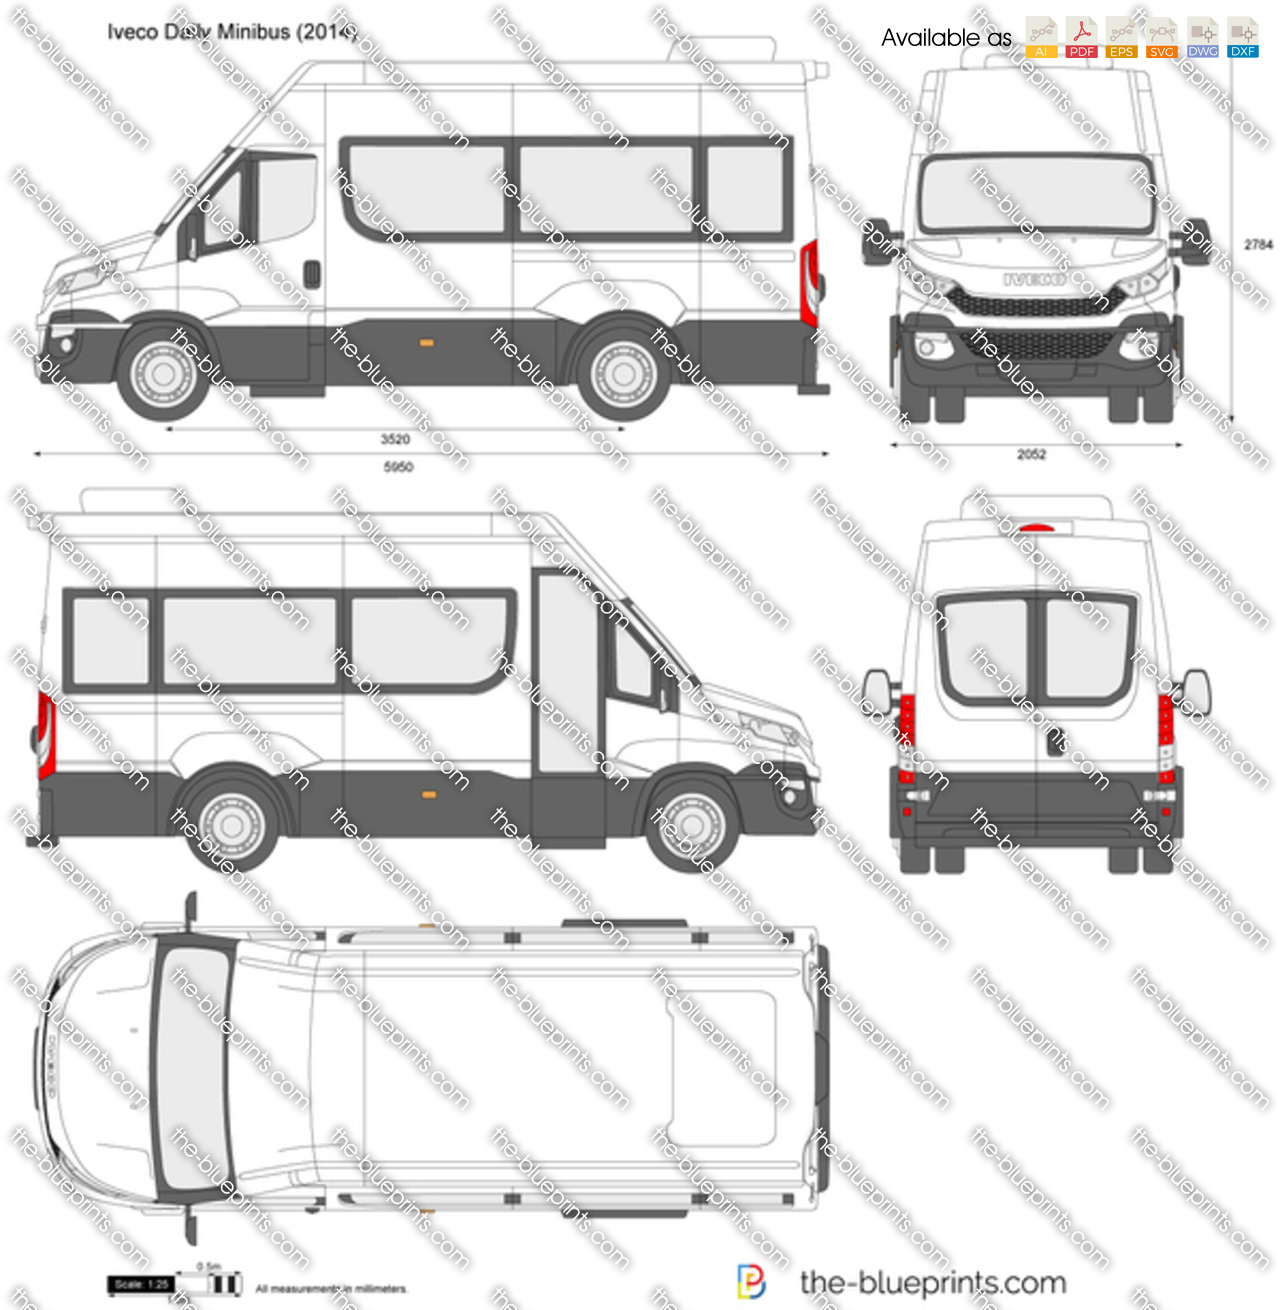 iveco daily minibus vector drawing. Black Bedroom Furniture Sets. Home Design Ideas